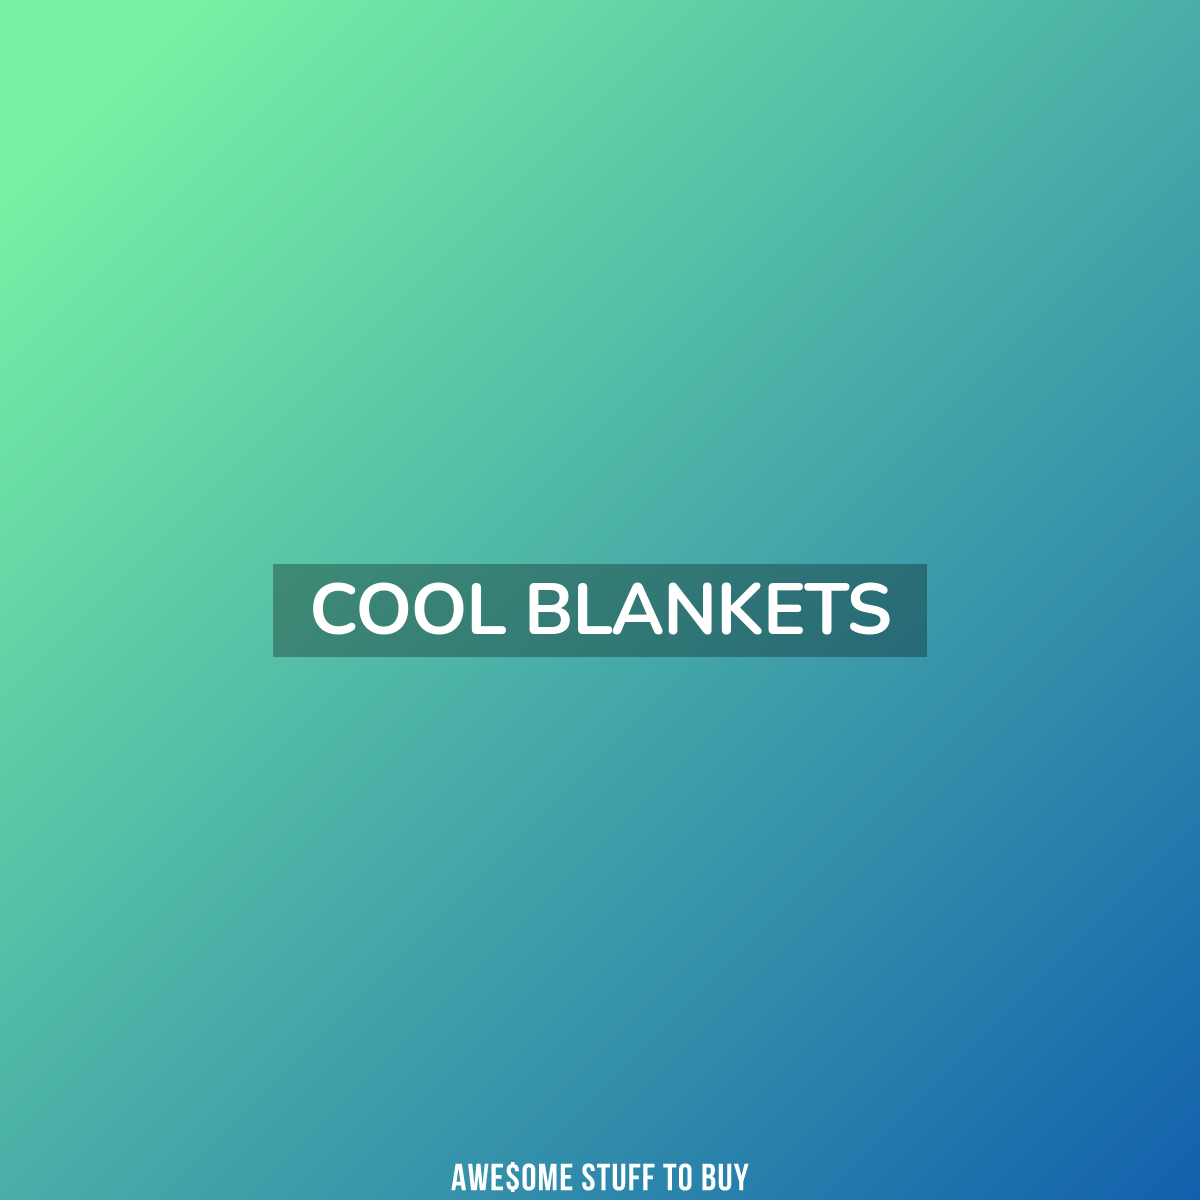 Cool Blankets // Awesome Stuff to Buy